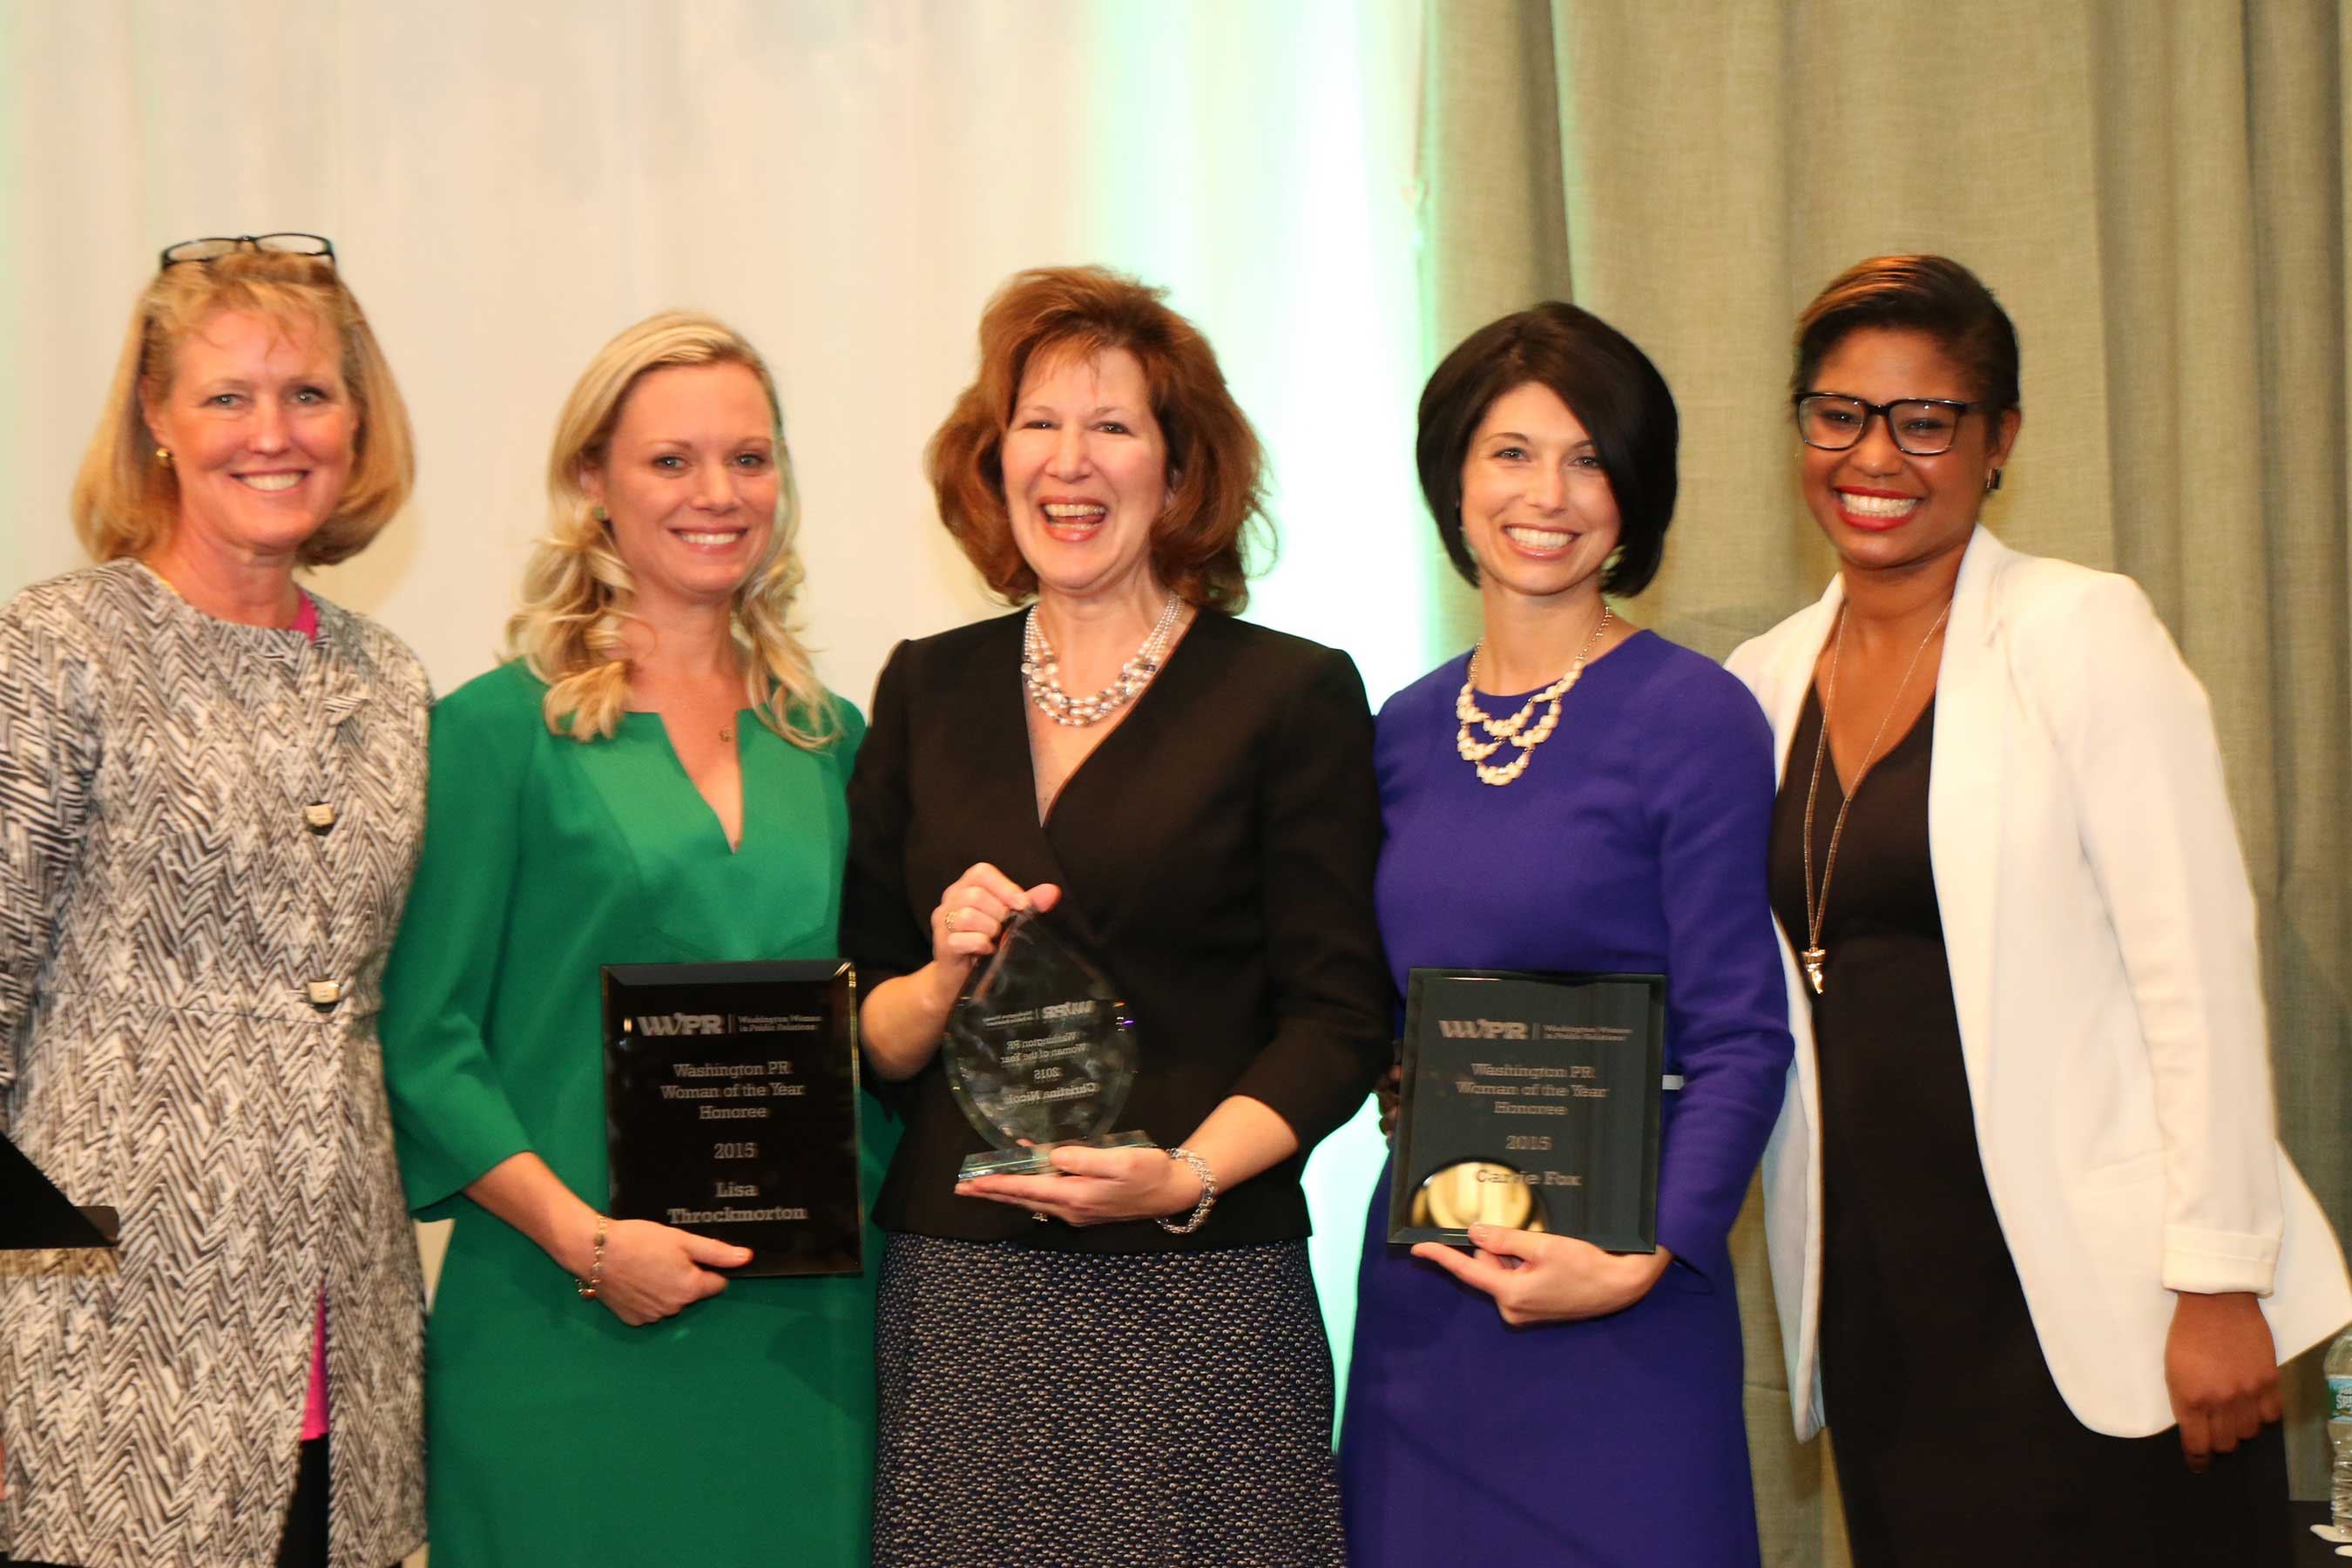 Our 2015 Washington PR Woman of the Year Finalists: Carrie Fox, Christina Nicols, and Lisa Throckmorton; alongside WWPR Woman of the Year Co-Chairs: Mary LoJacono and Danielle Veira.